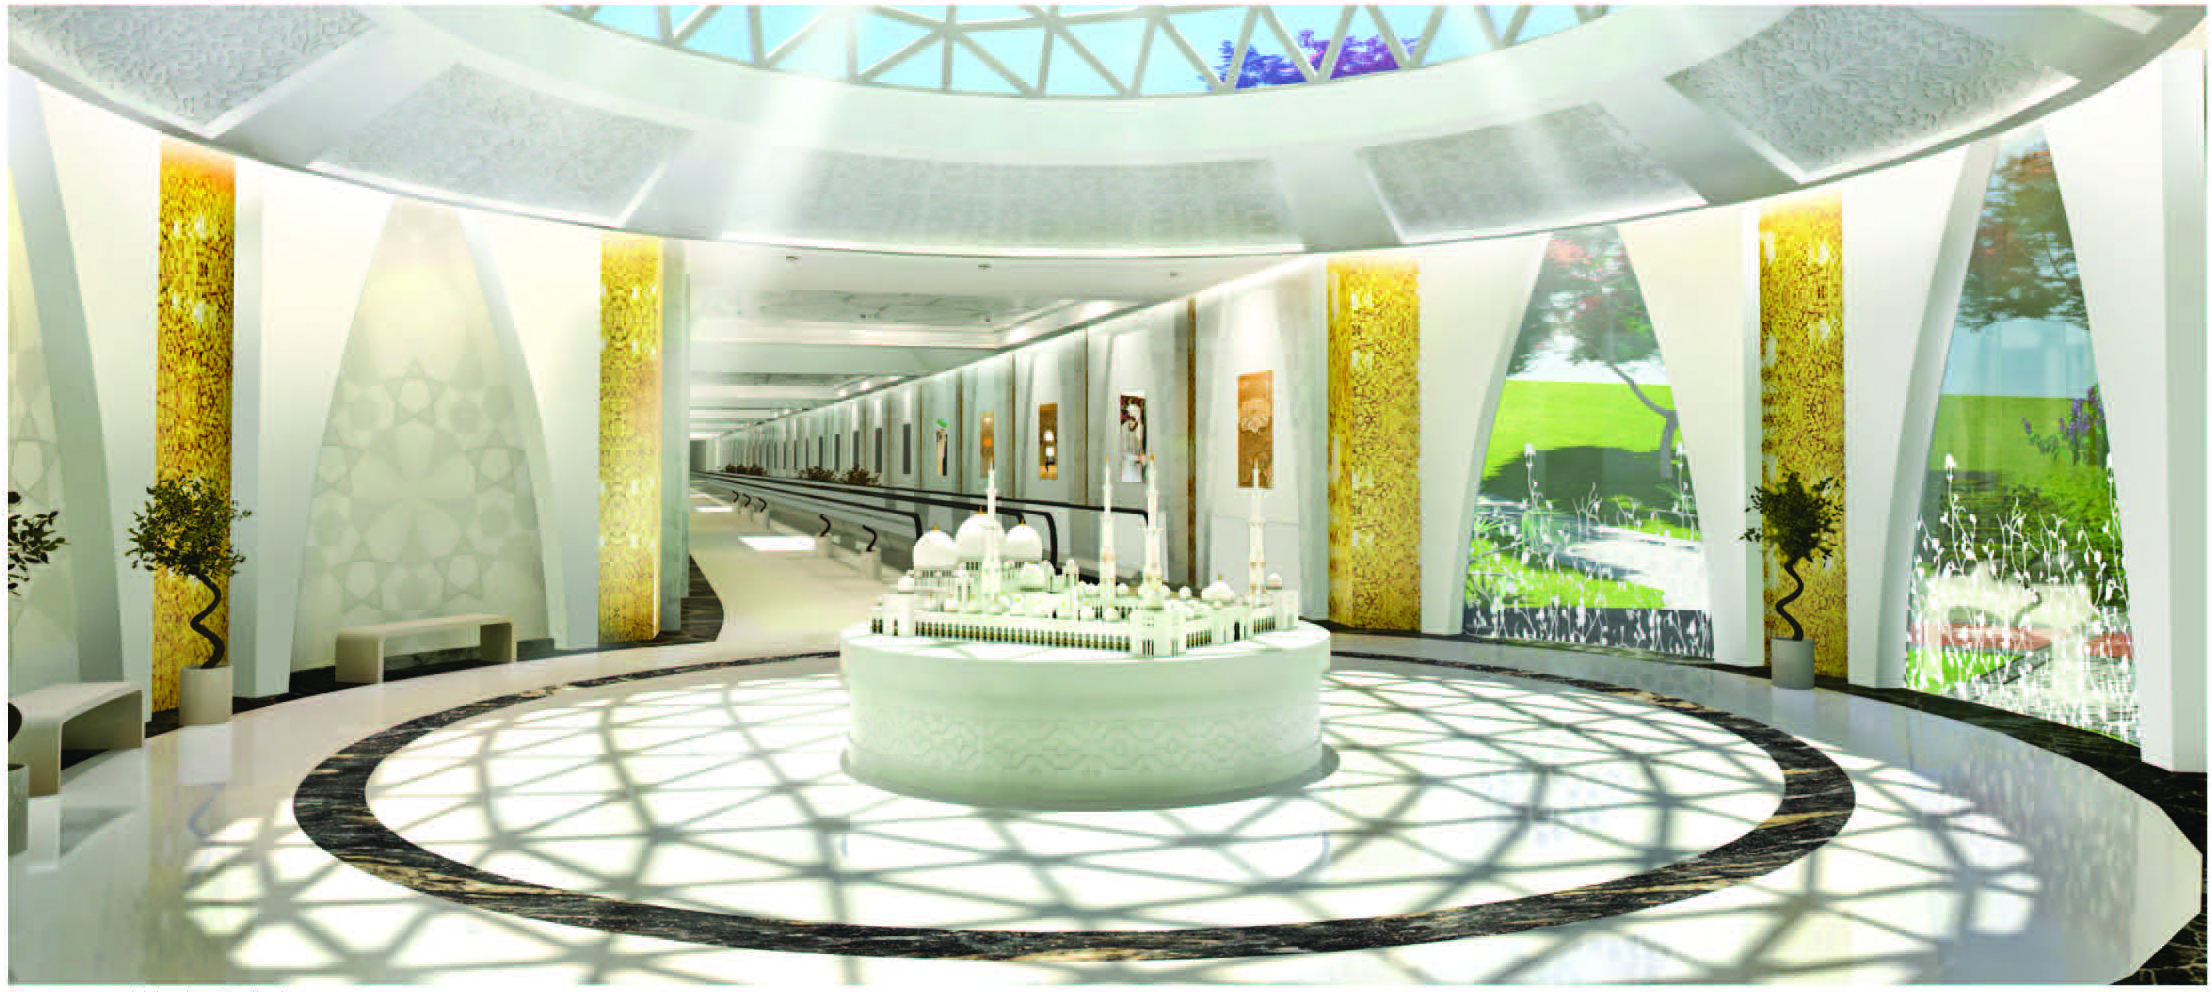 Sheikh Zayed Grand Mosque New Visitor S Center And Plaza Desimone Consulting Engineers